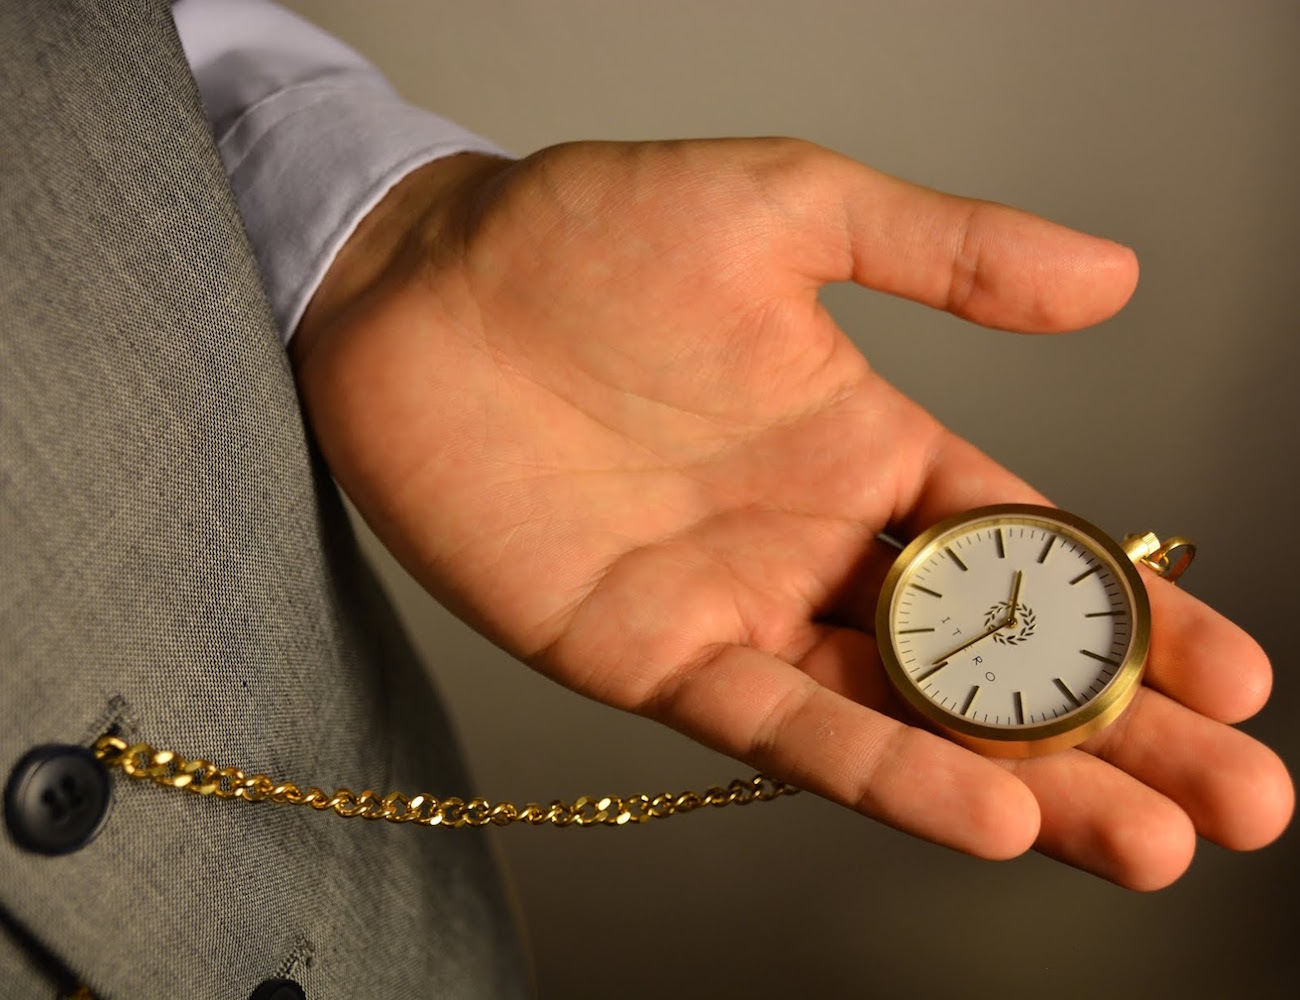 utero-pocket-watches-are-back-02